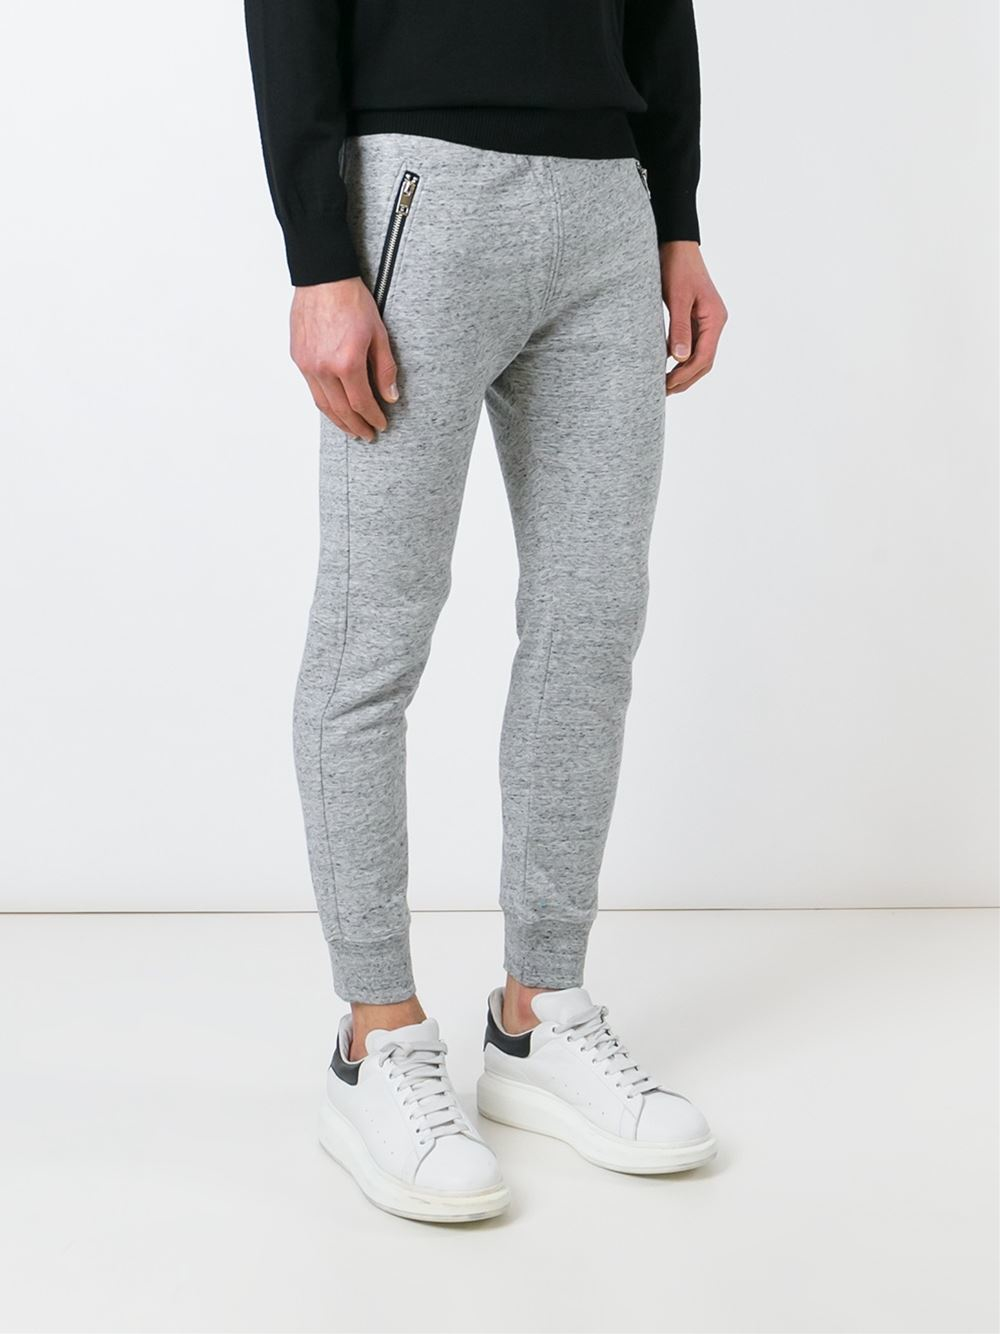 Find great deals on eBay for slim fit men pants. Shop with confidence. Skip to main content. eBay: Shop by category. Shop by category. Enter your search keyword Victorious Men's Slim Fit Striped Sports Workout Techno Track Pants TRS1F. Brand New. $ Buy It Now +$ shipping.